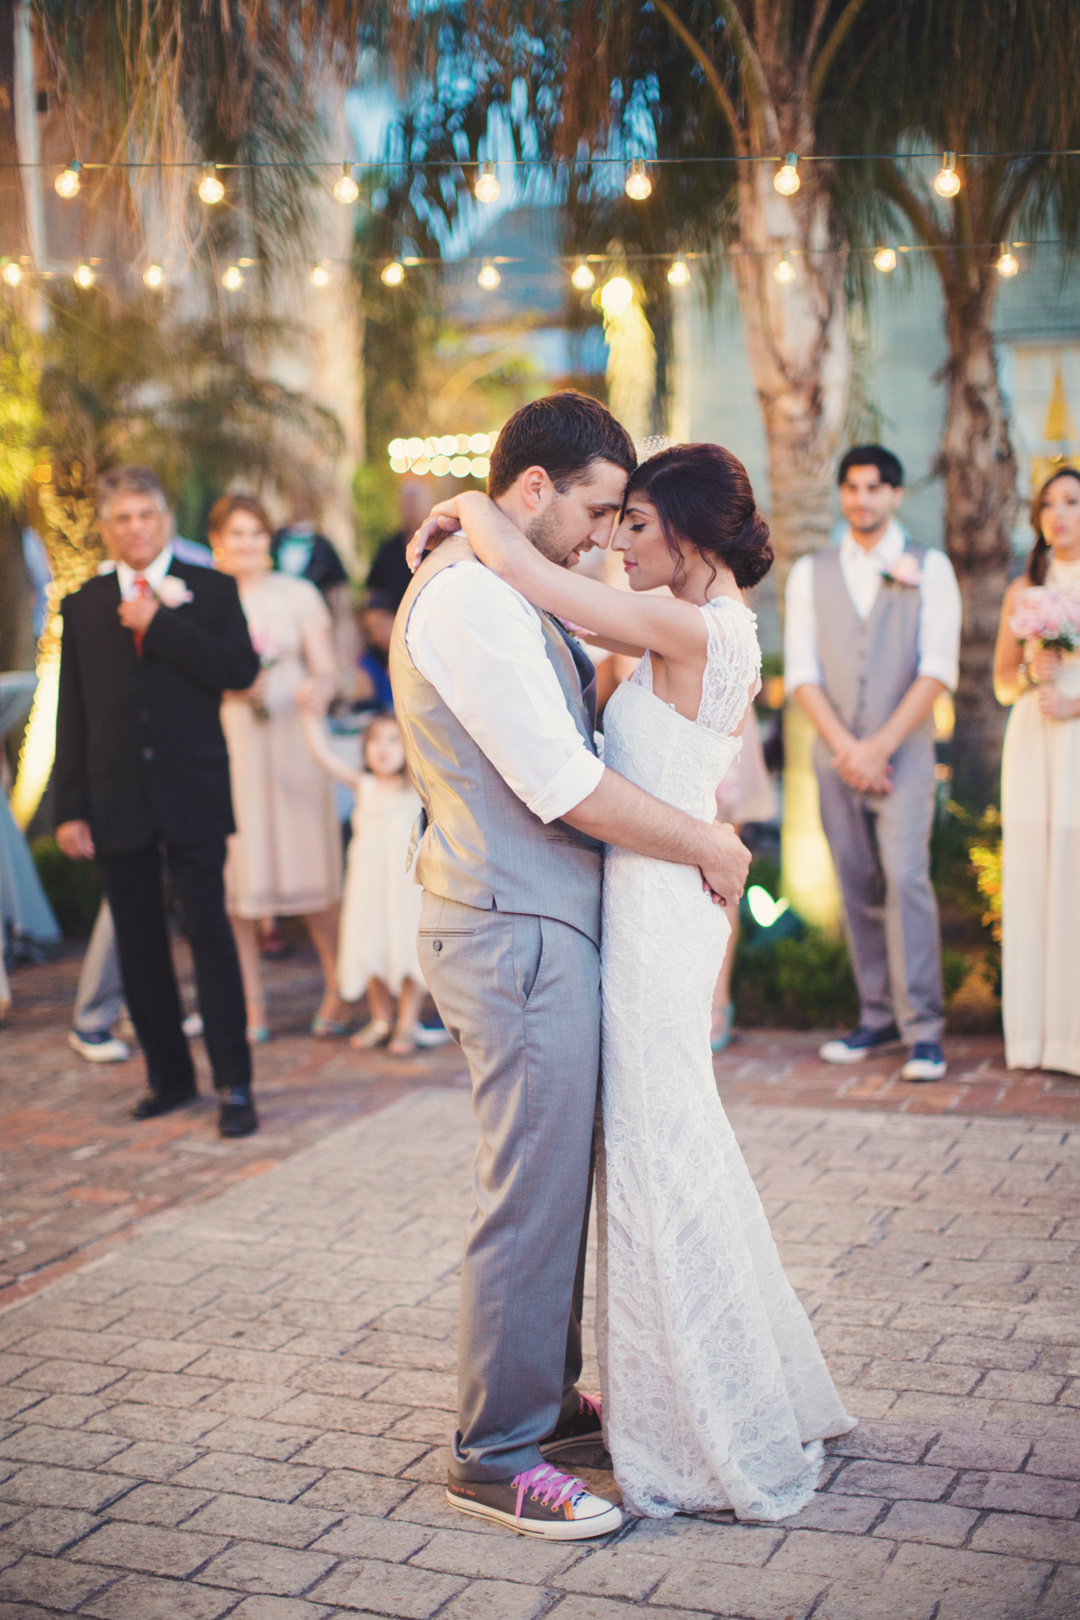 Northern California Wedding Photographer @ Anne-Claire Brun 0080